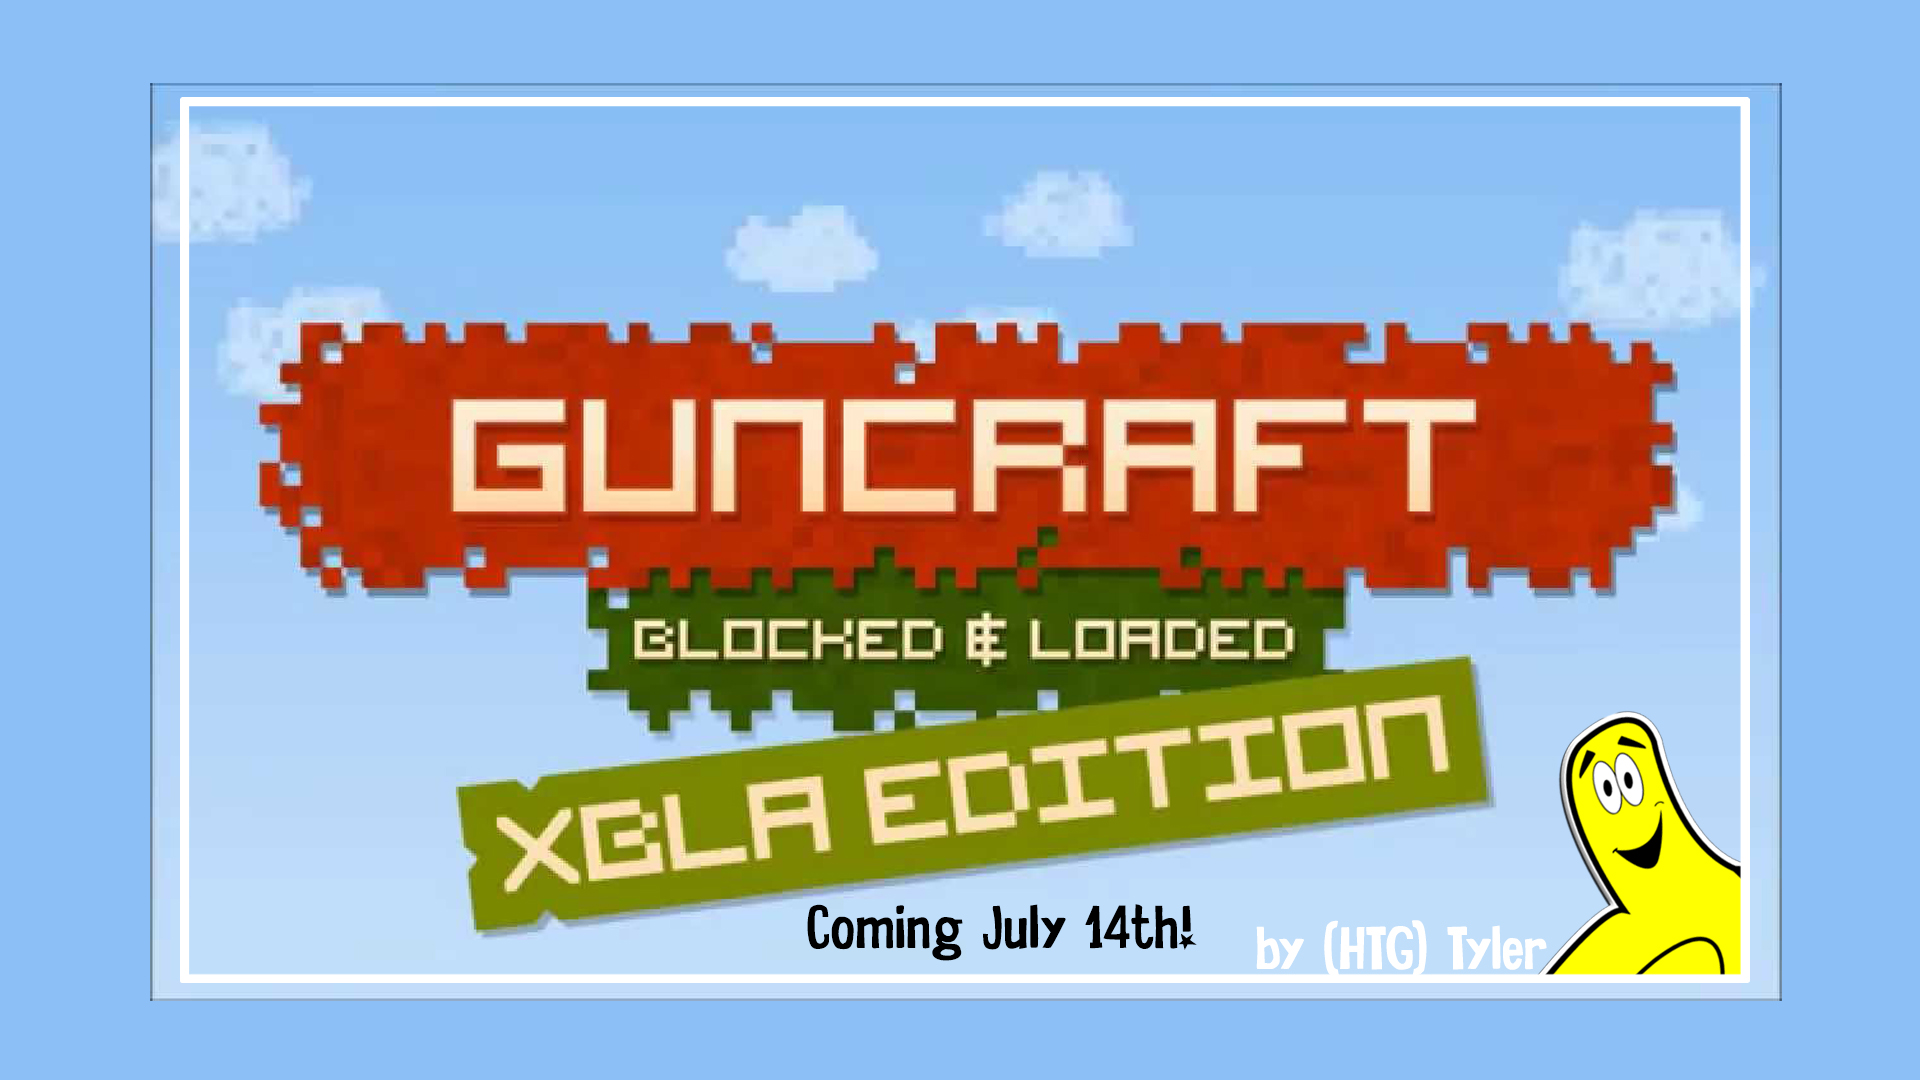 XBLA_GuncraftFEATURED